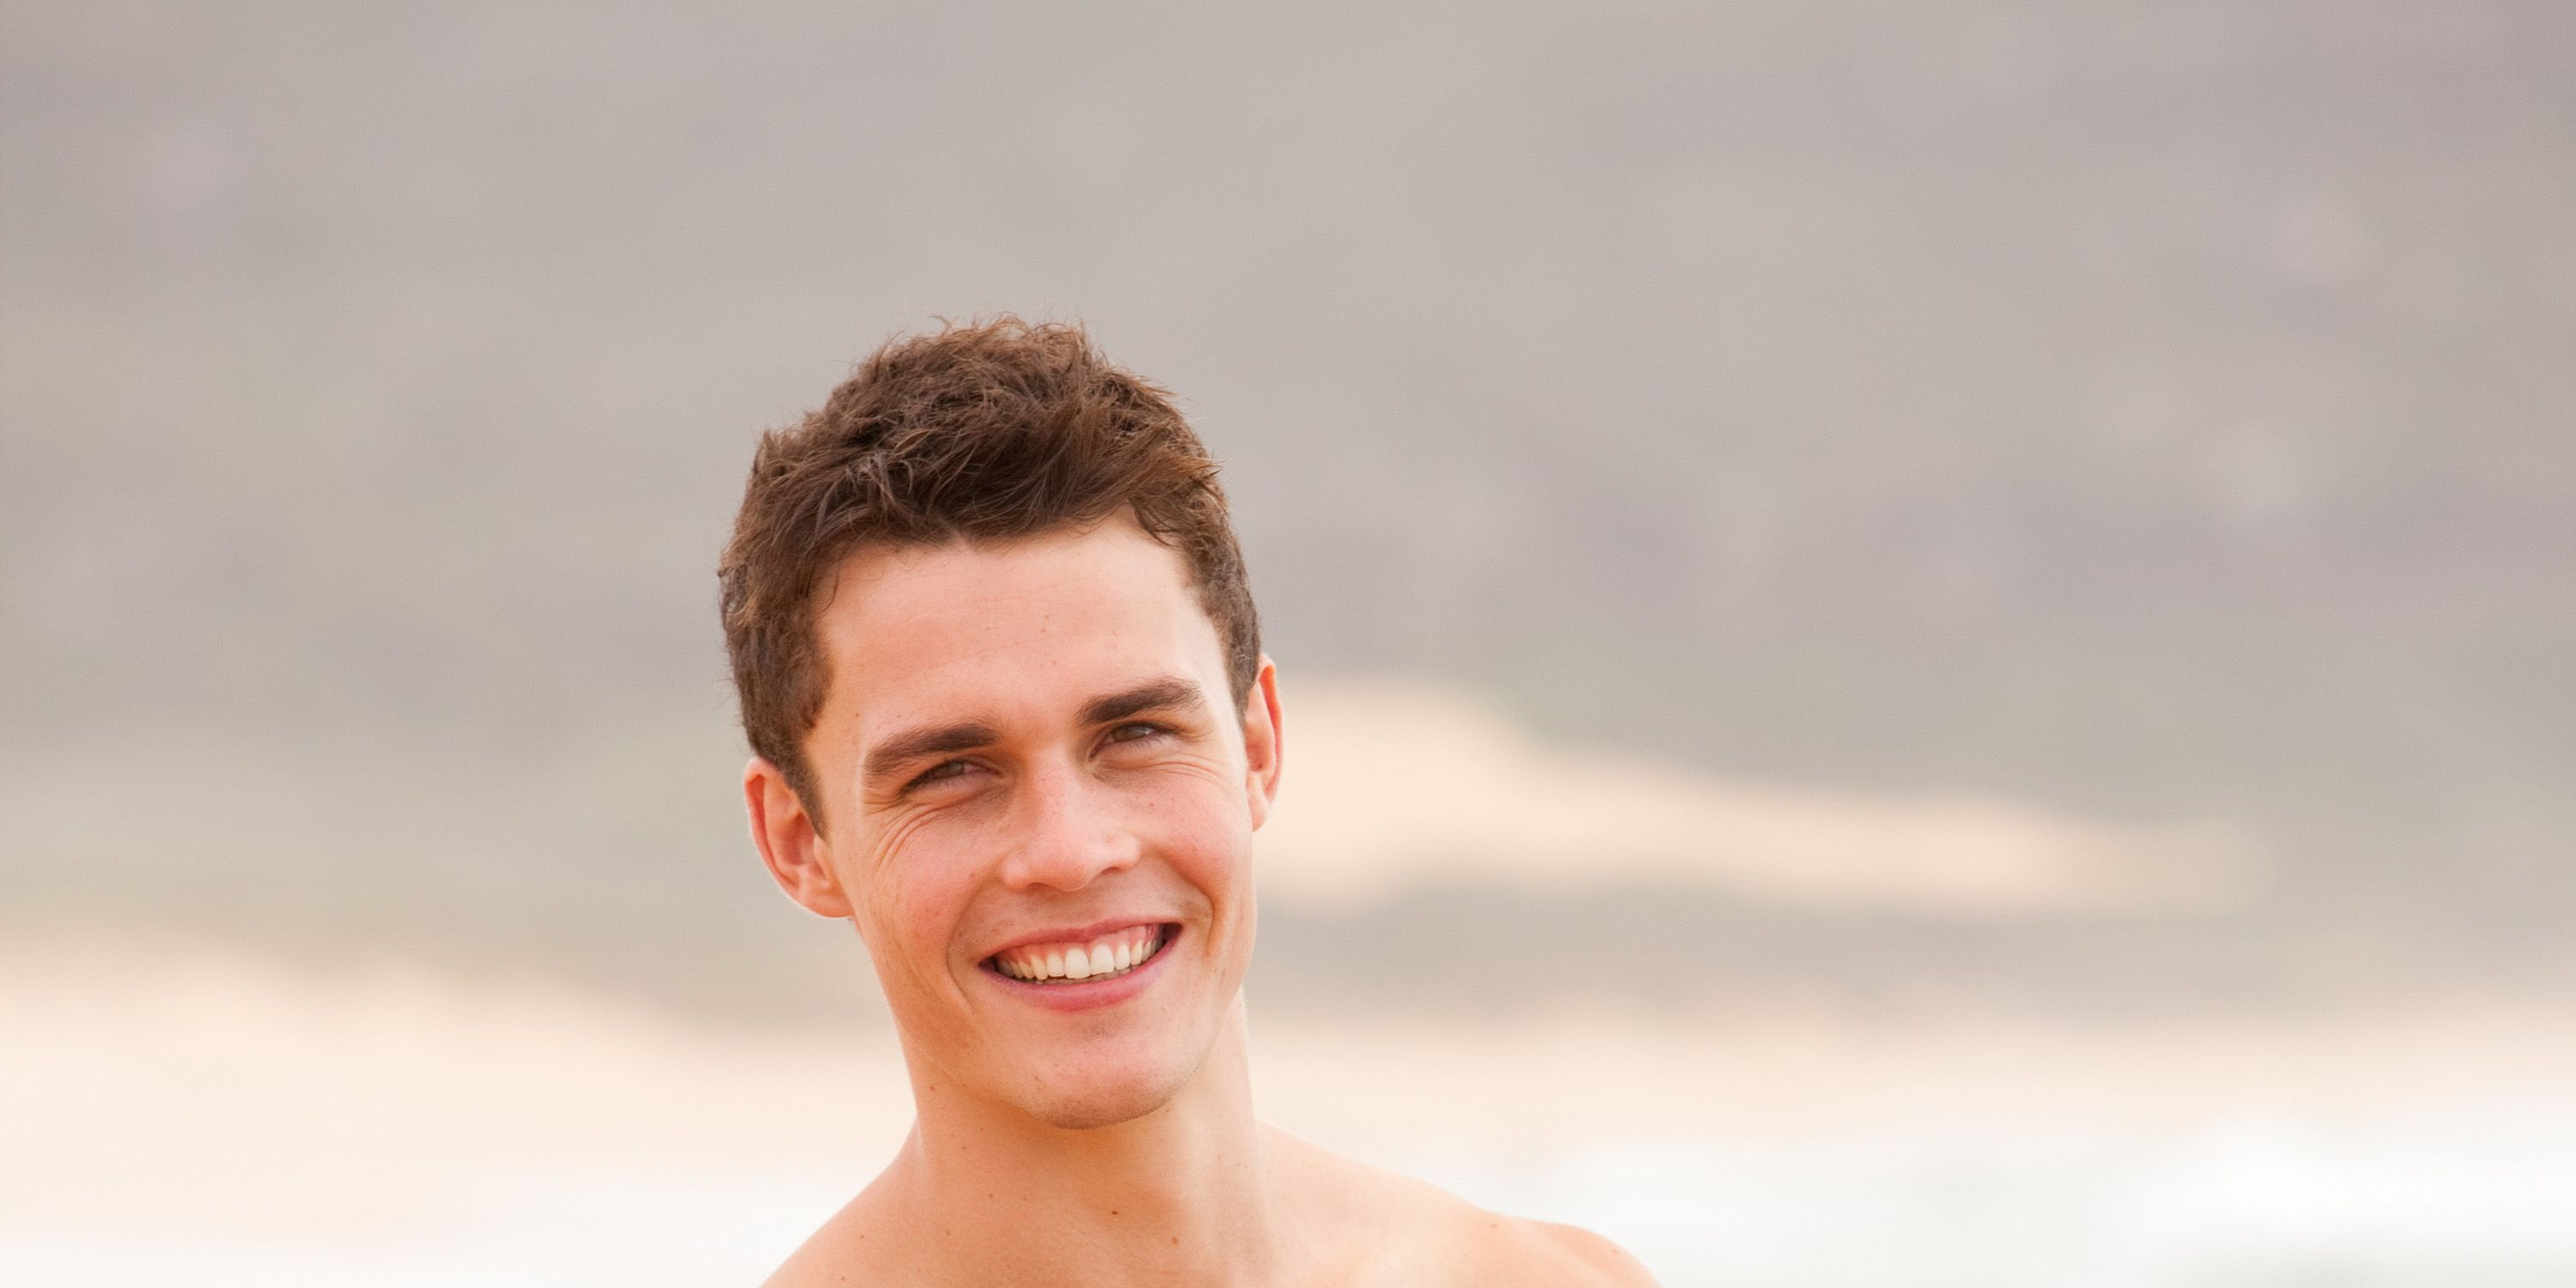 Andrew Morley as Spencer Harrington in Home and Away